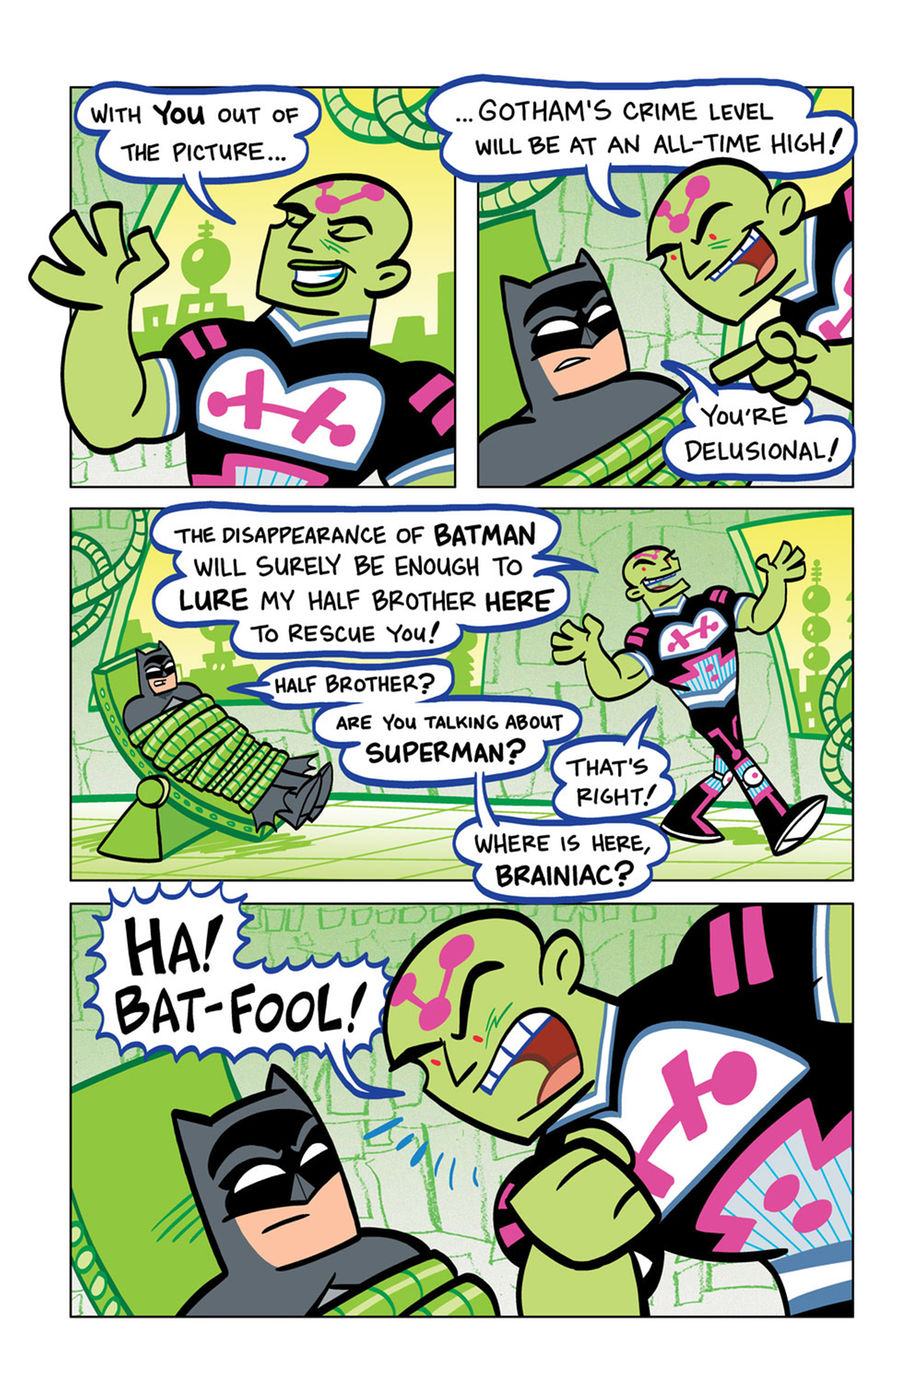 superpowers04